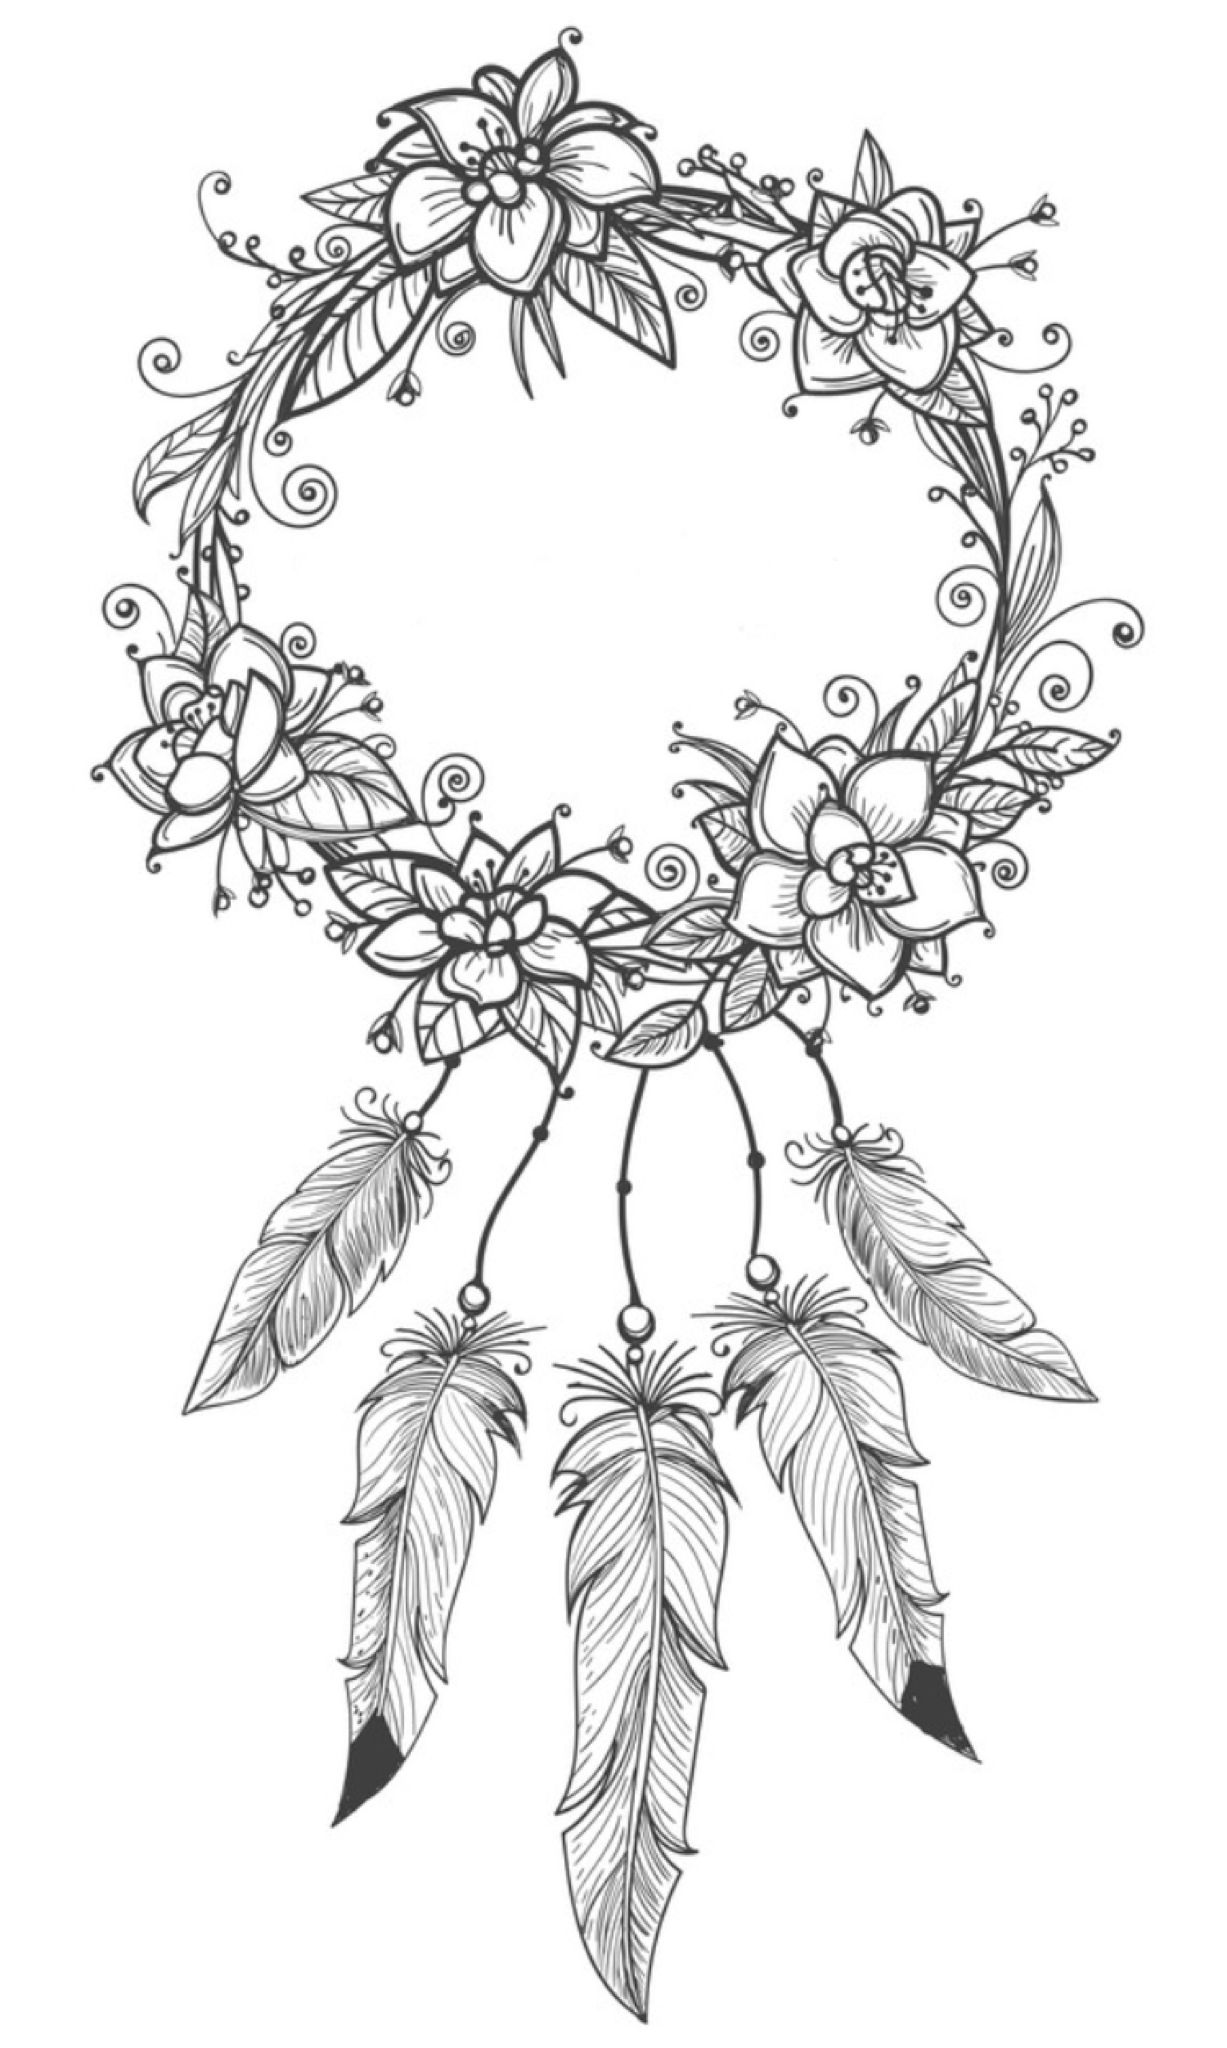 coloring pages for adults dream catchers dreamcatcher coloring page by felicity french dream for coloring catchers adults dream pages